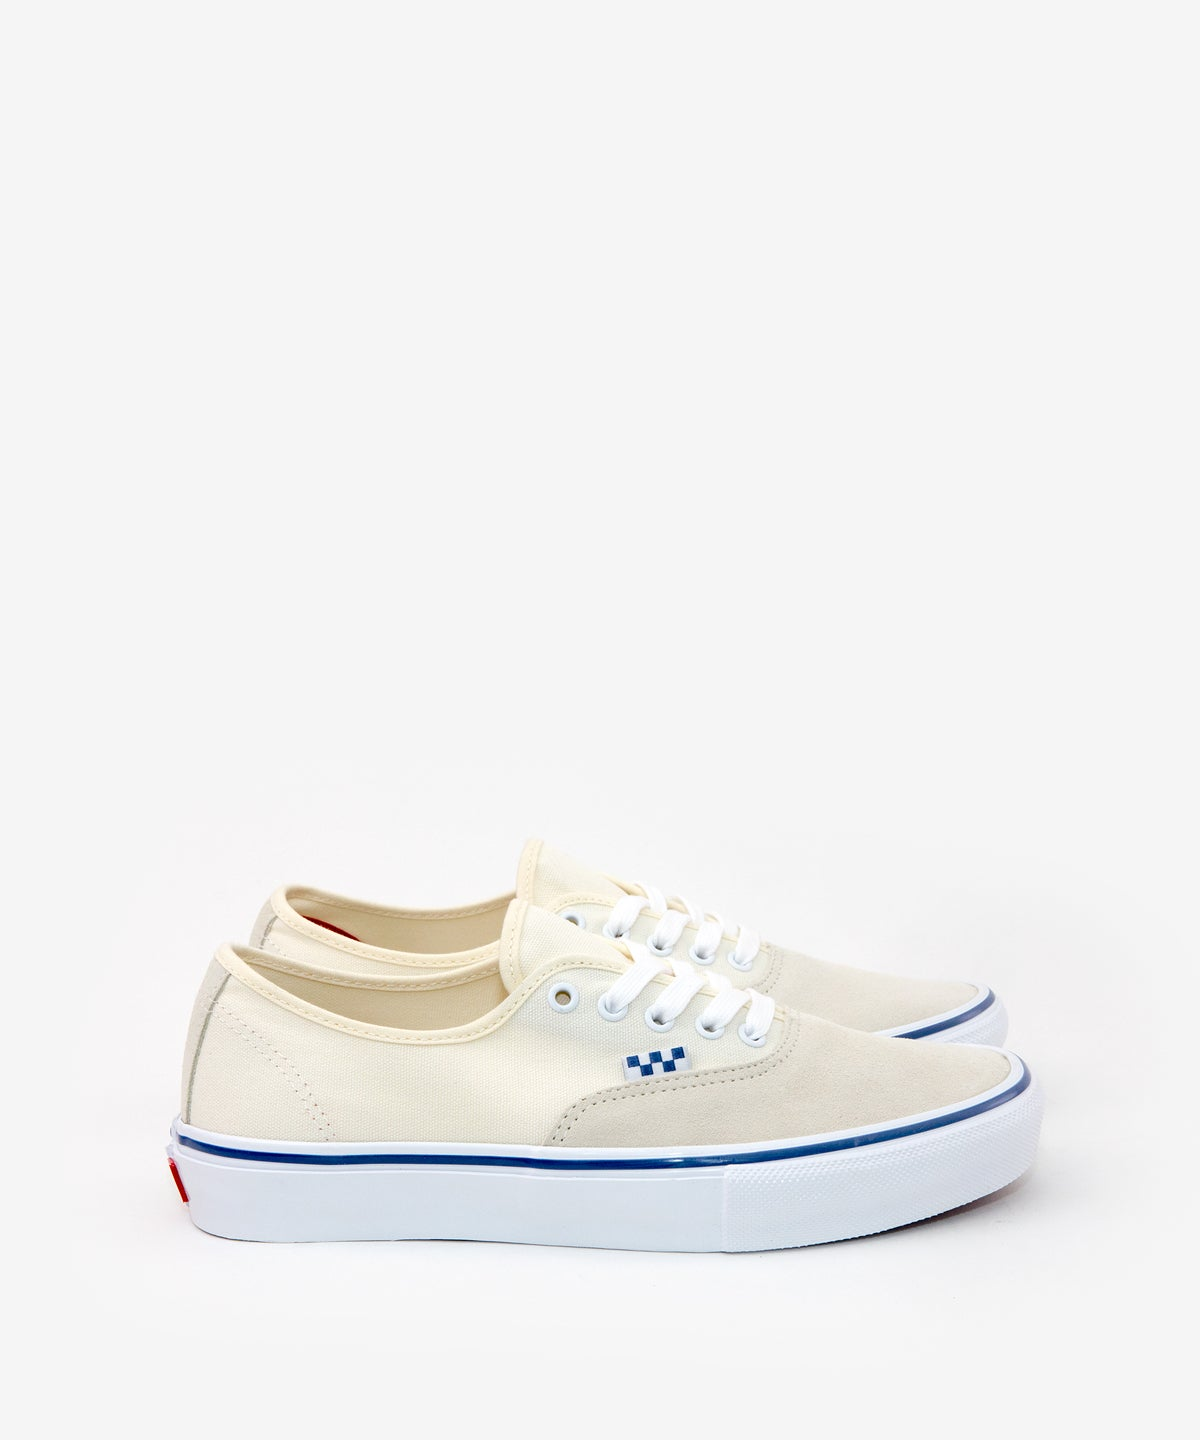 Image of VANS_SKATE AUTHENTIC :::OFF WHITE:::